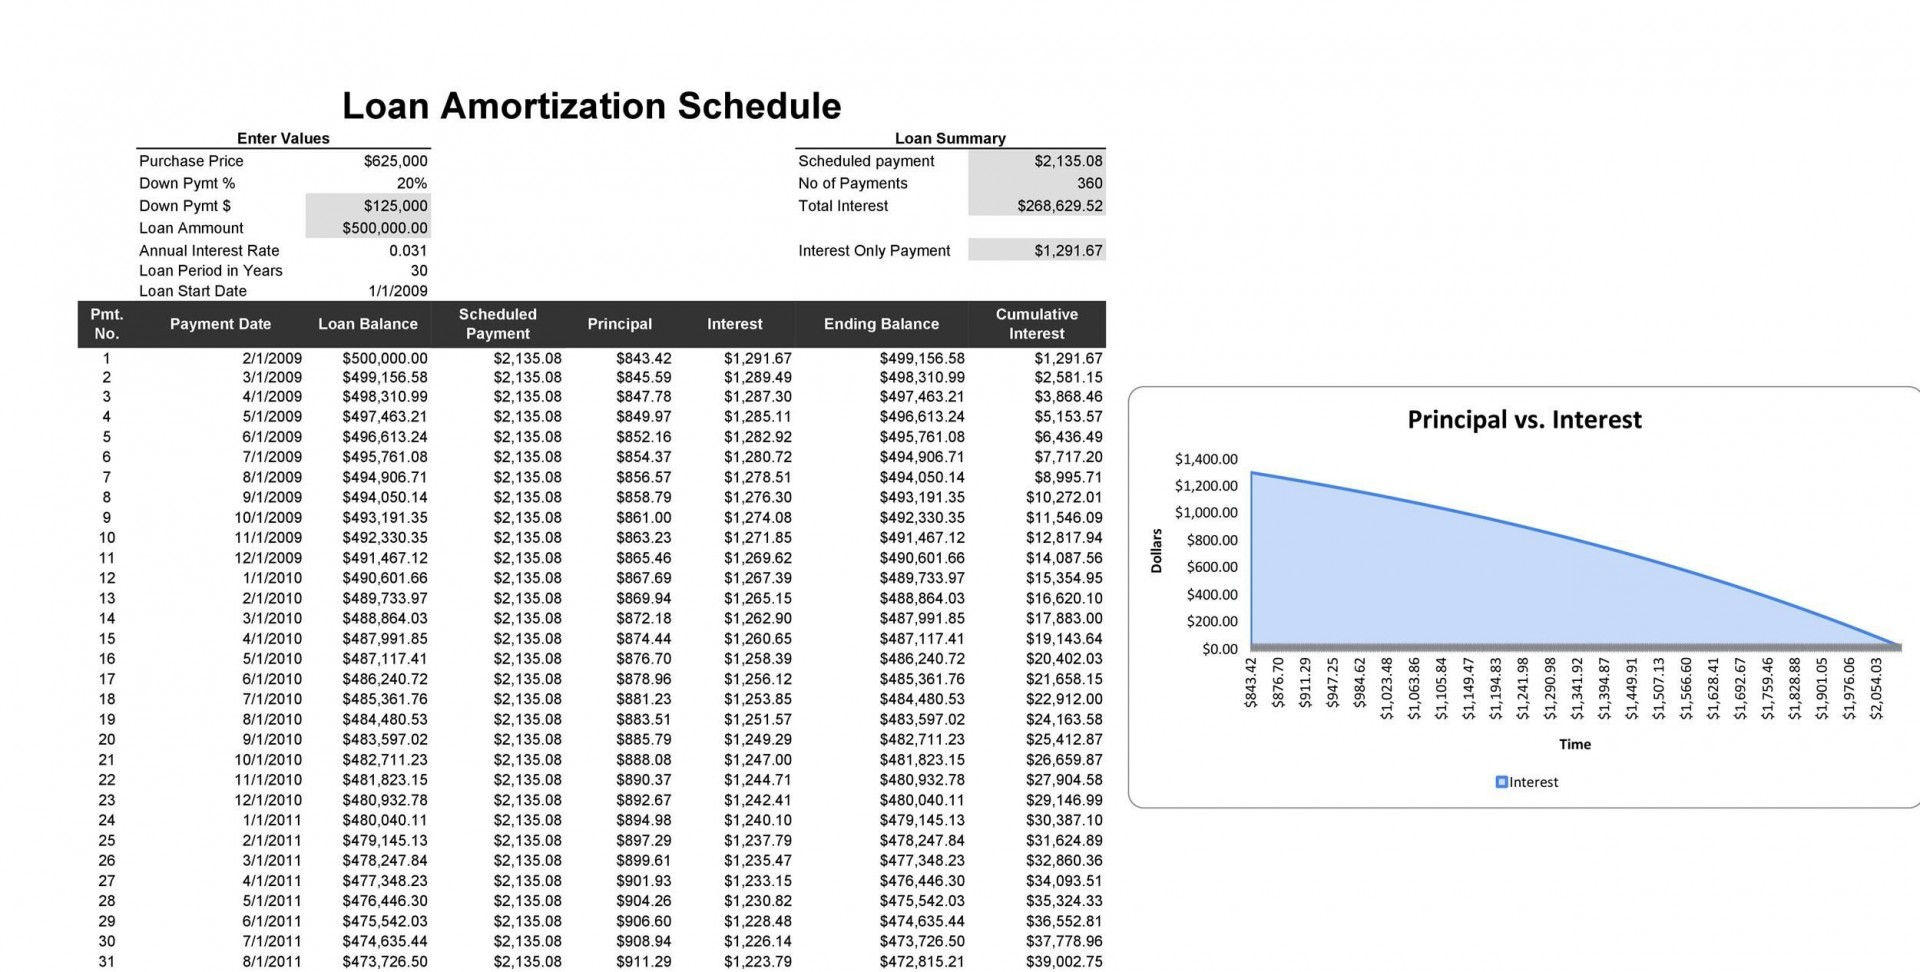 007 Marvelou Loan Amortization Excel Template High Def  Schedule 2010 Free 20071920